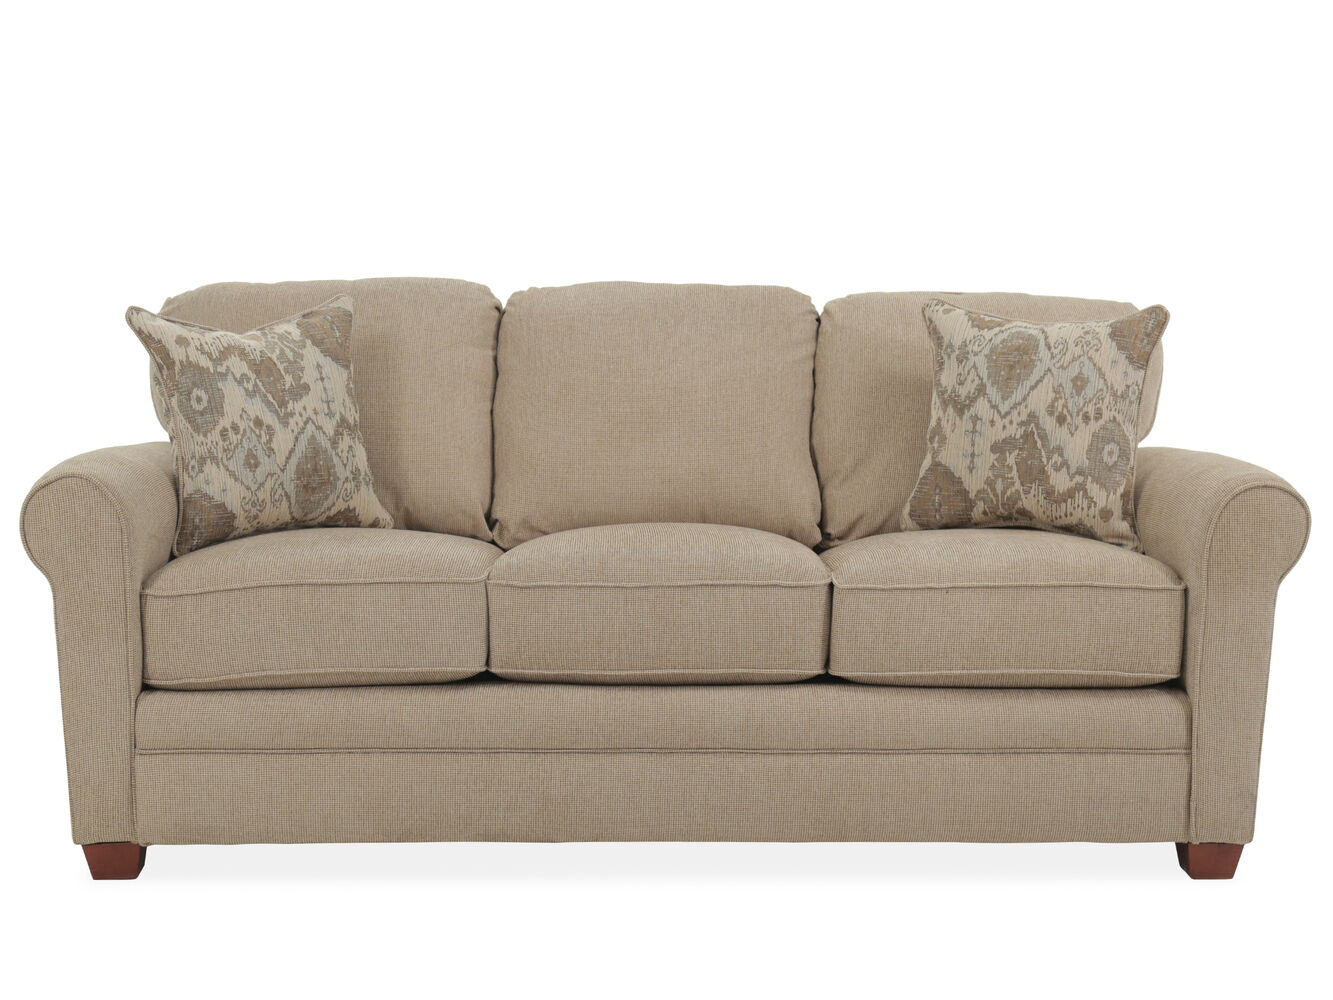 Roll arm transitional 84 queen sleeper sofa in sand for Sofa 84 inch